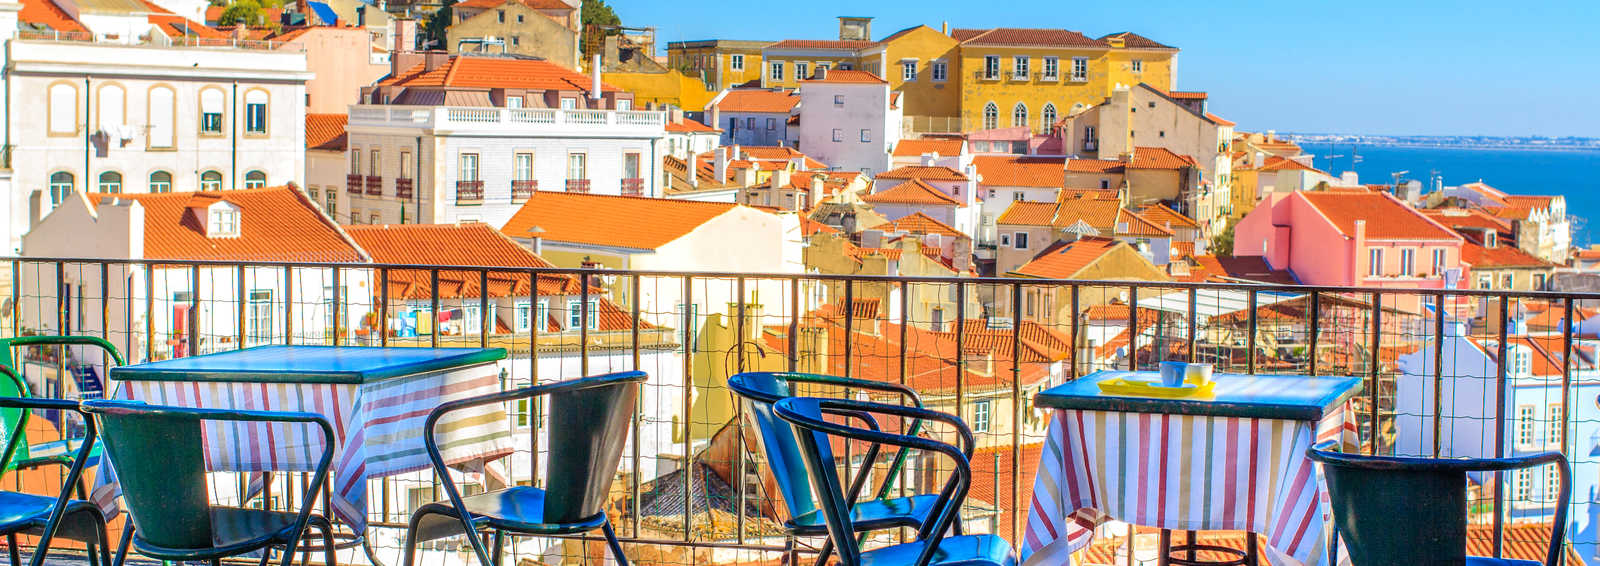 terrace with breathtaking view at Alfama - historical city-center of Lisbon, Portugal